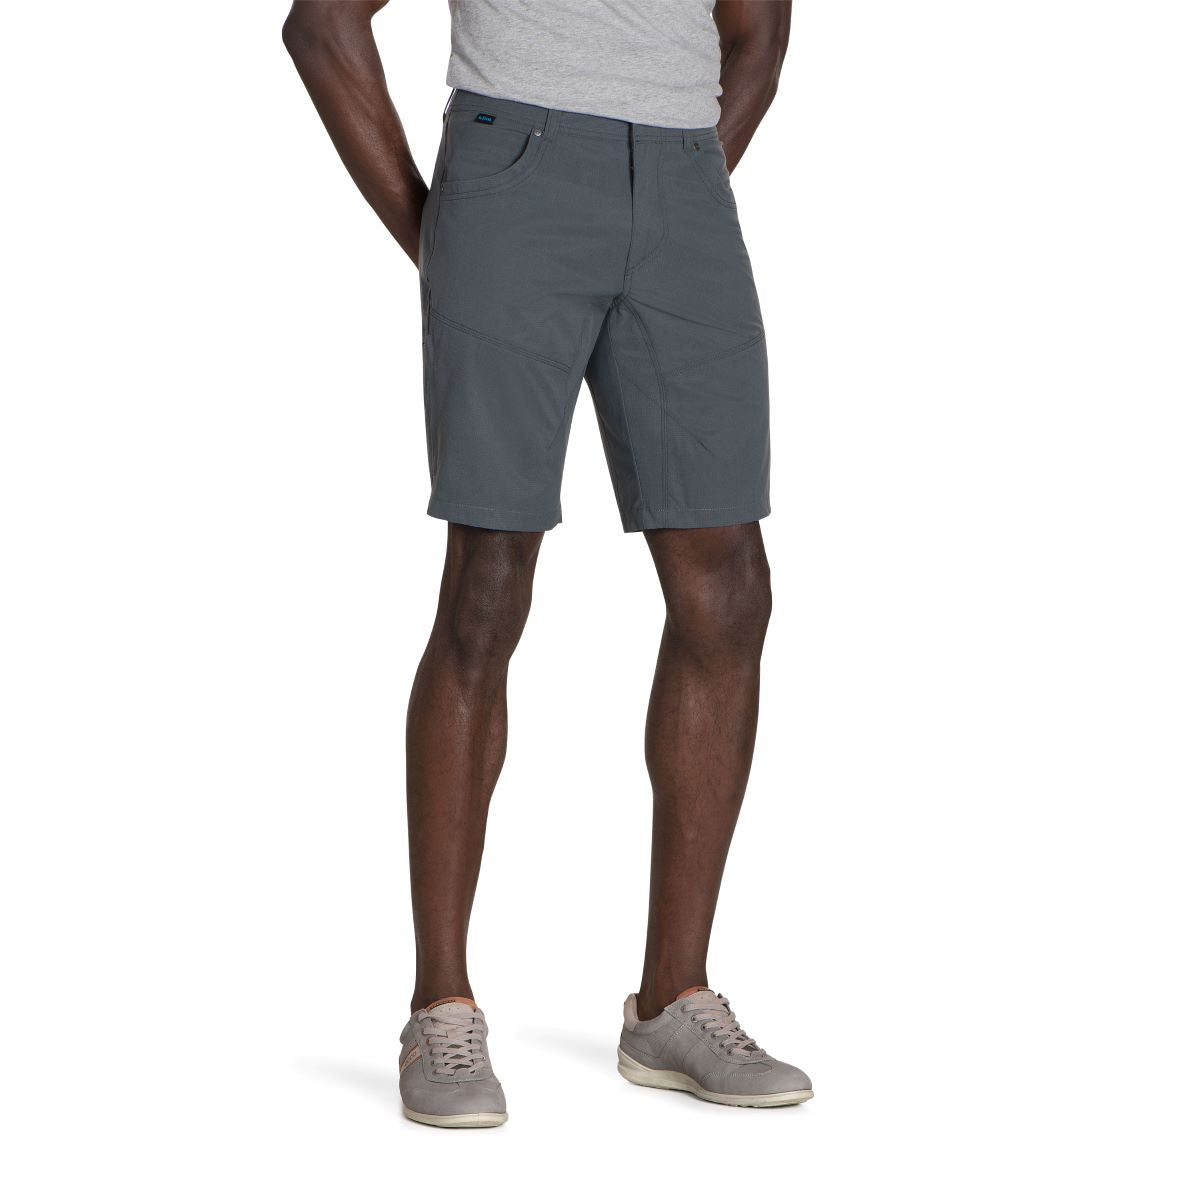 'Kuhl' Men's Silencr™ Kargo Short - Carbon